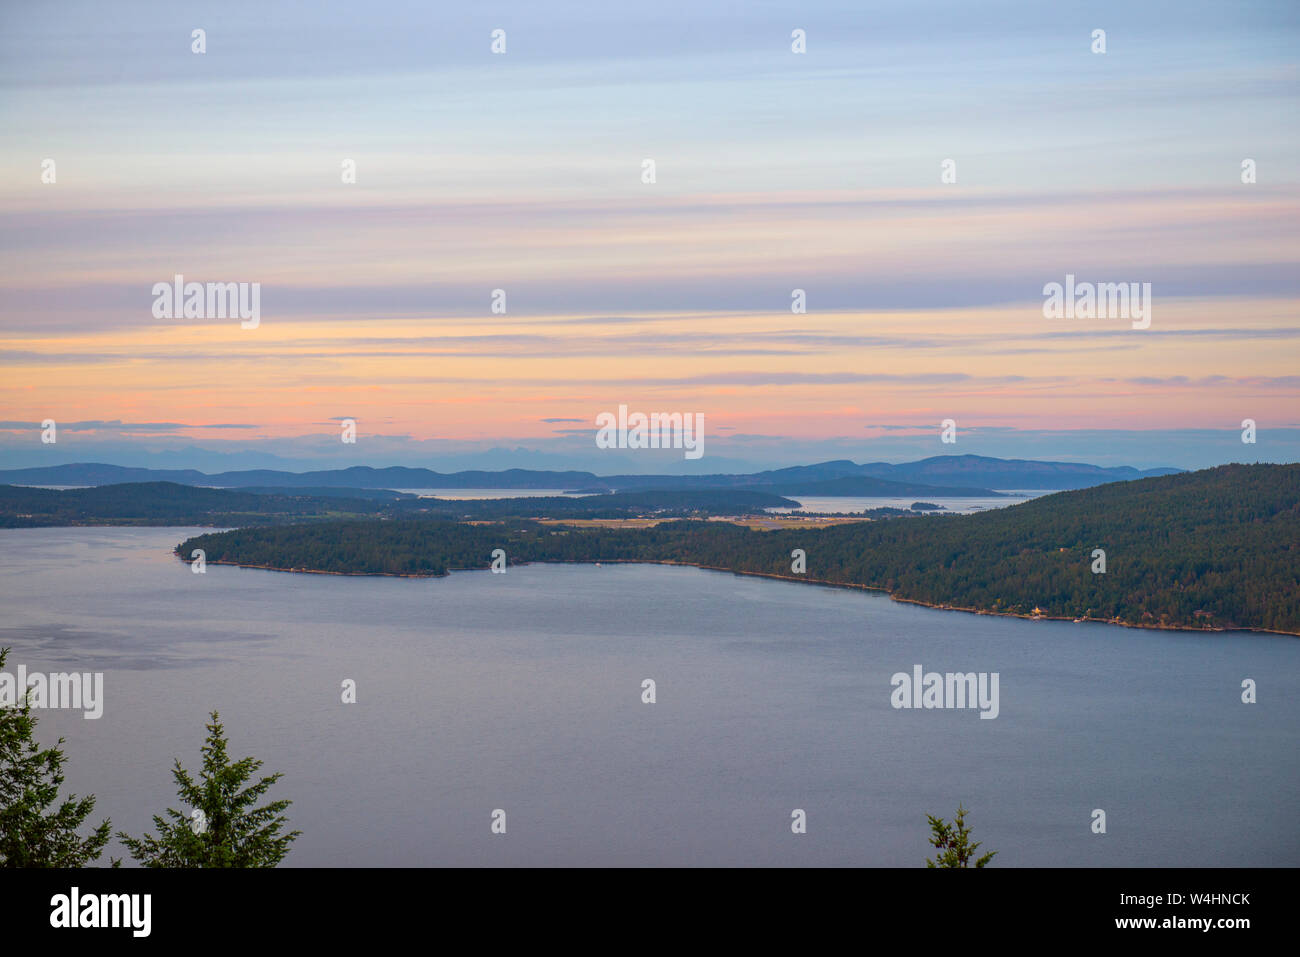 View of the Saanich inlet and gulf islands from the Malahat summit at sunset in Vancouver Island, BC, Canada Stock Photo